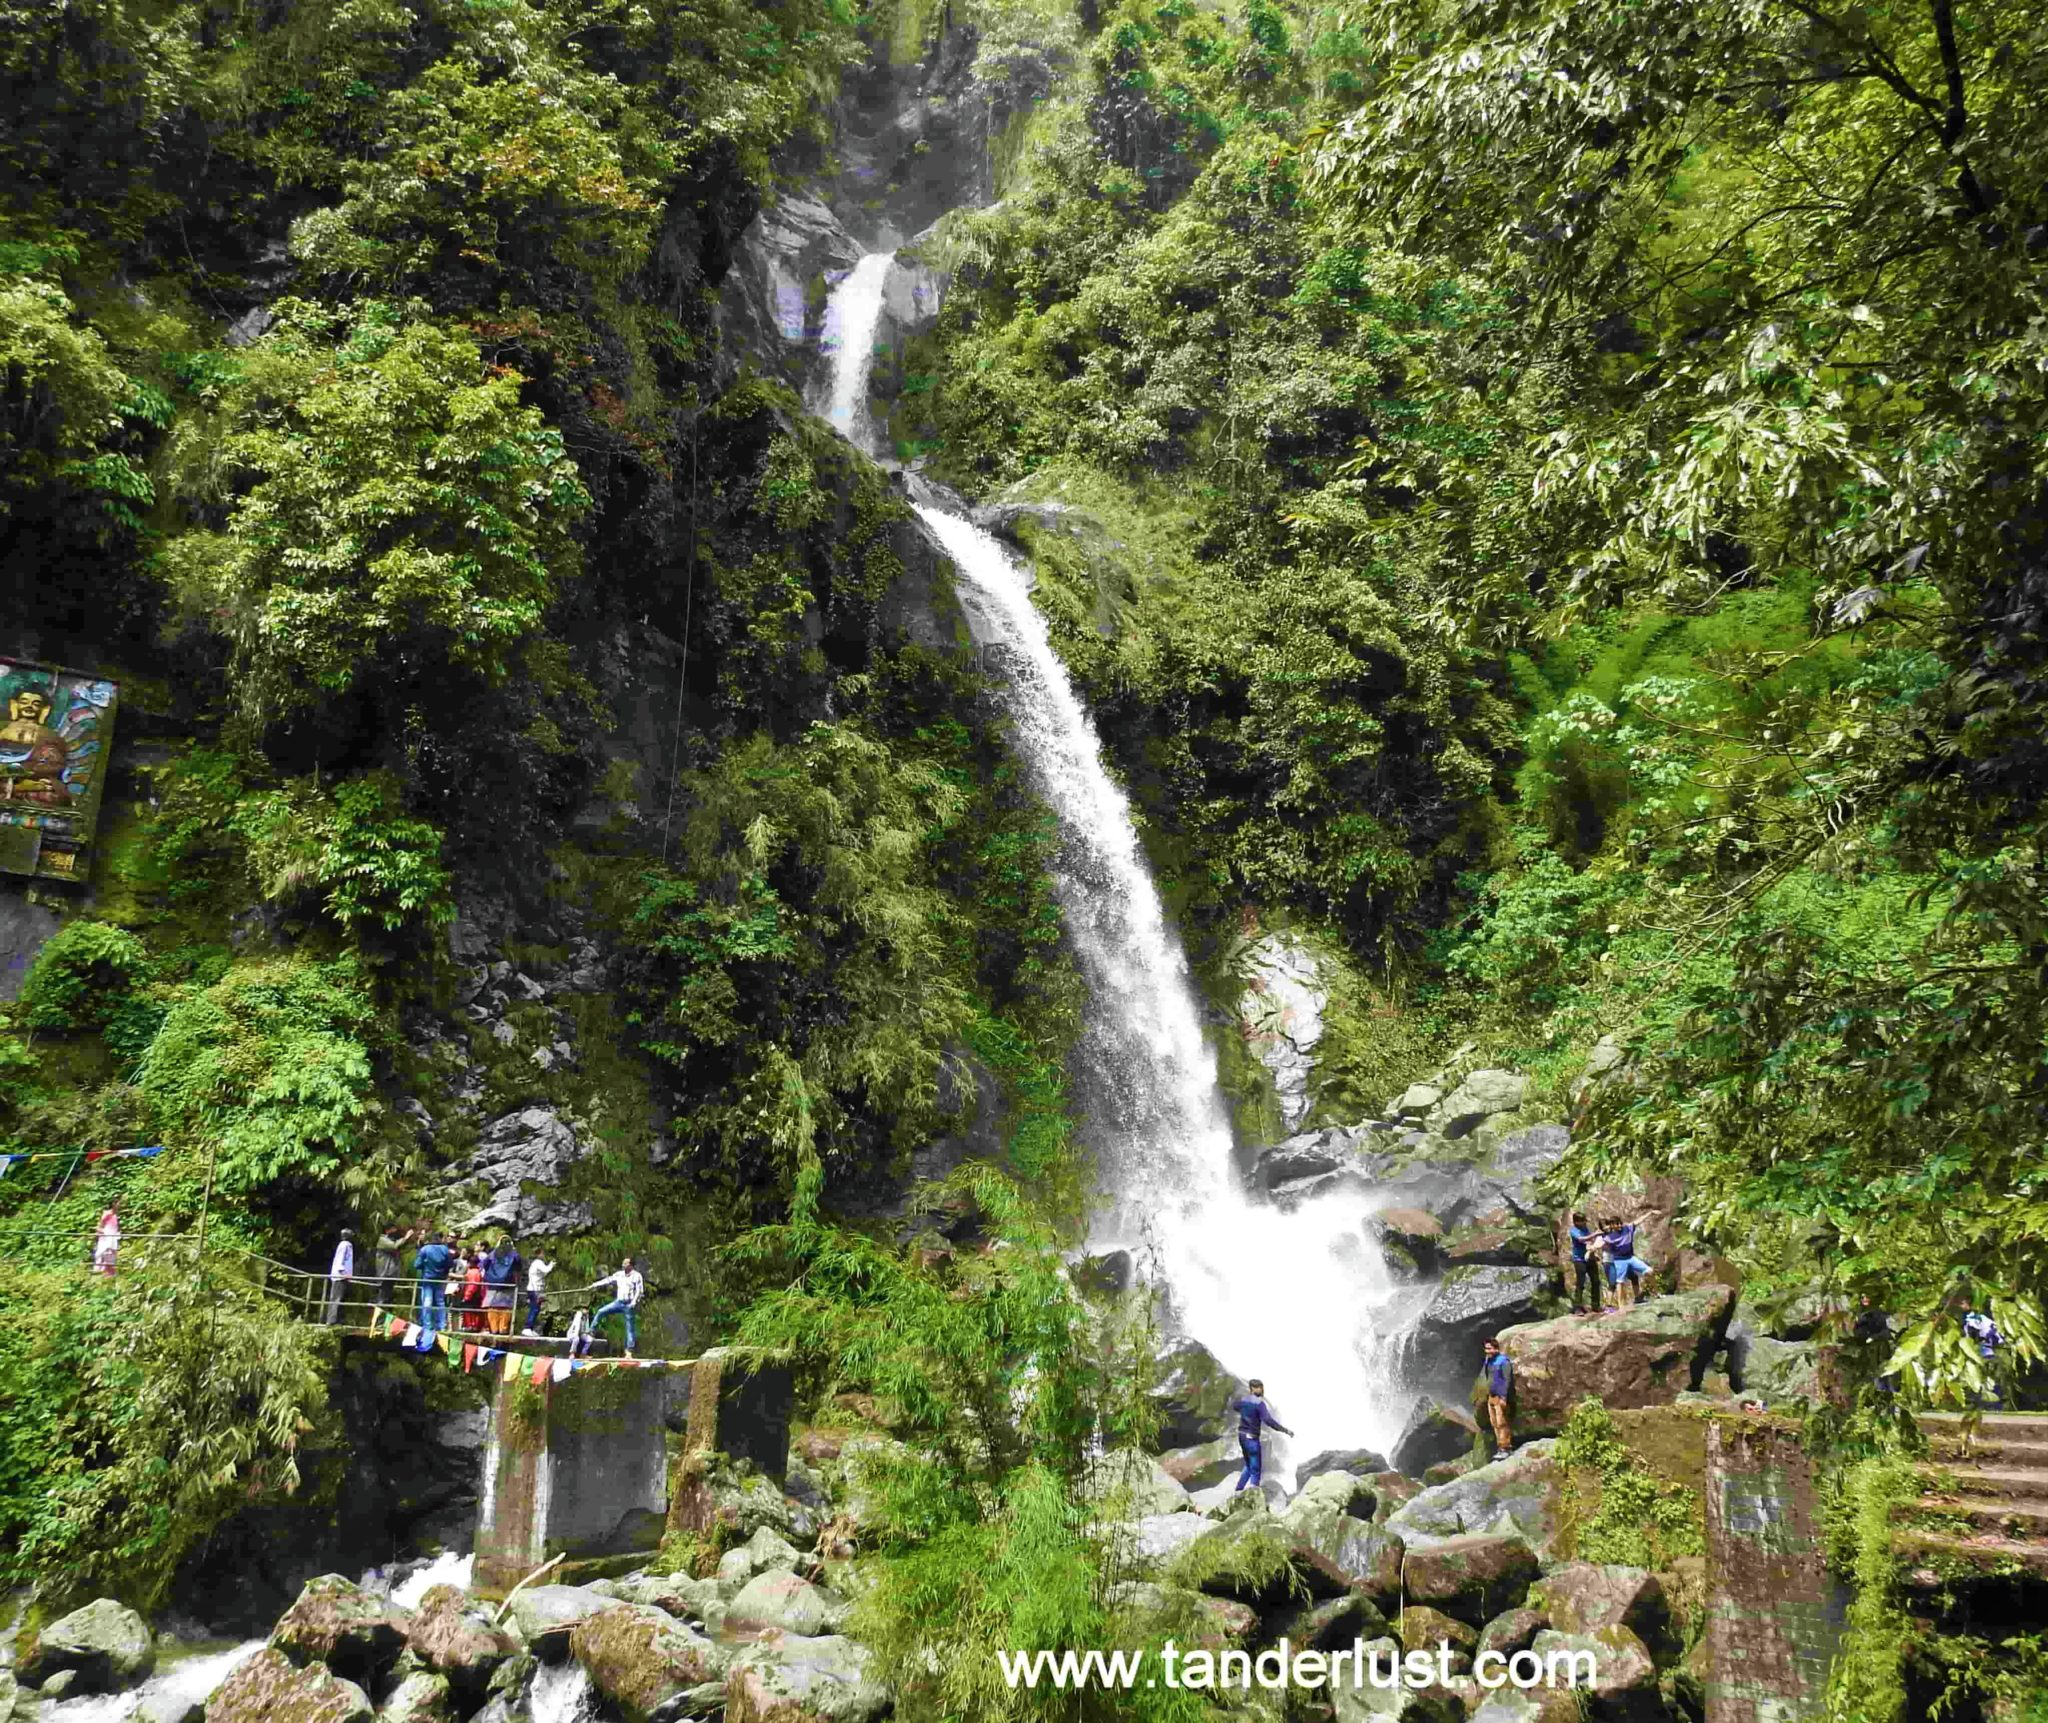 Making a quick halt at the Seven sister falls Gangtok!